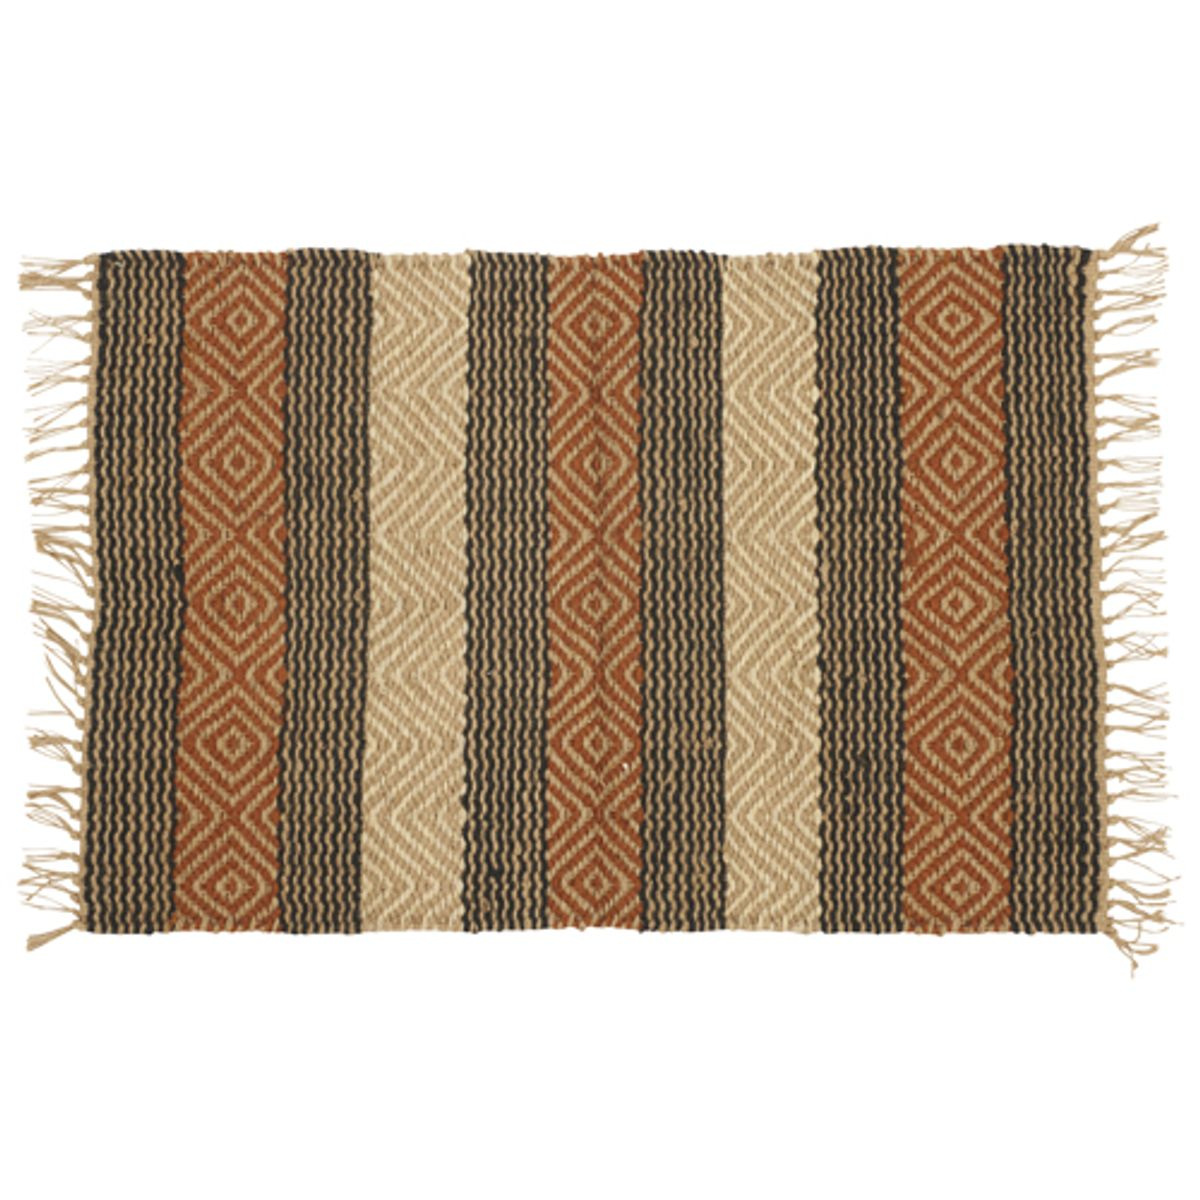 tapis rectangulaire en jute avec motifs athezza orange. Black Bedroom Furniture Sets. Home Design Ideas